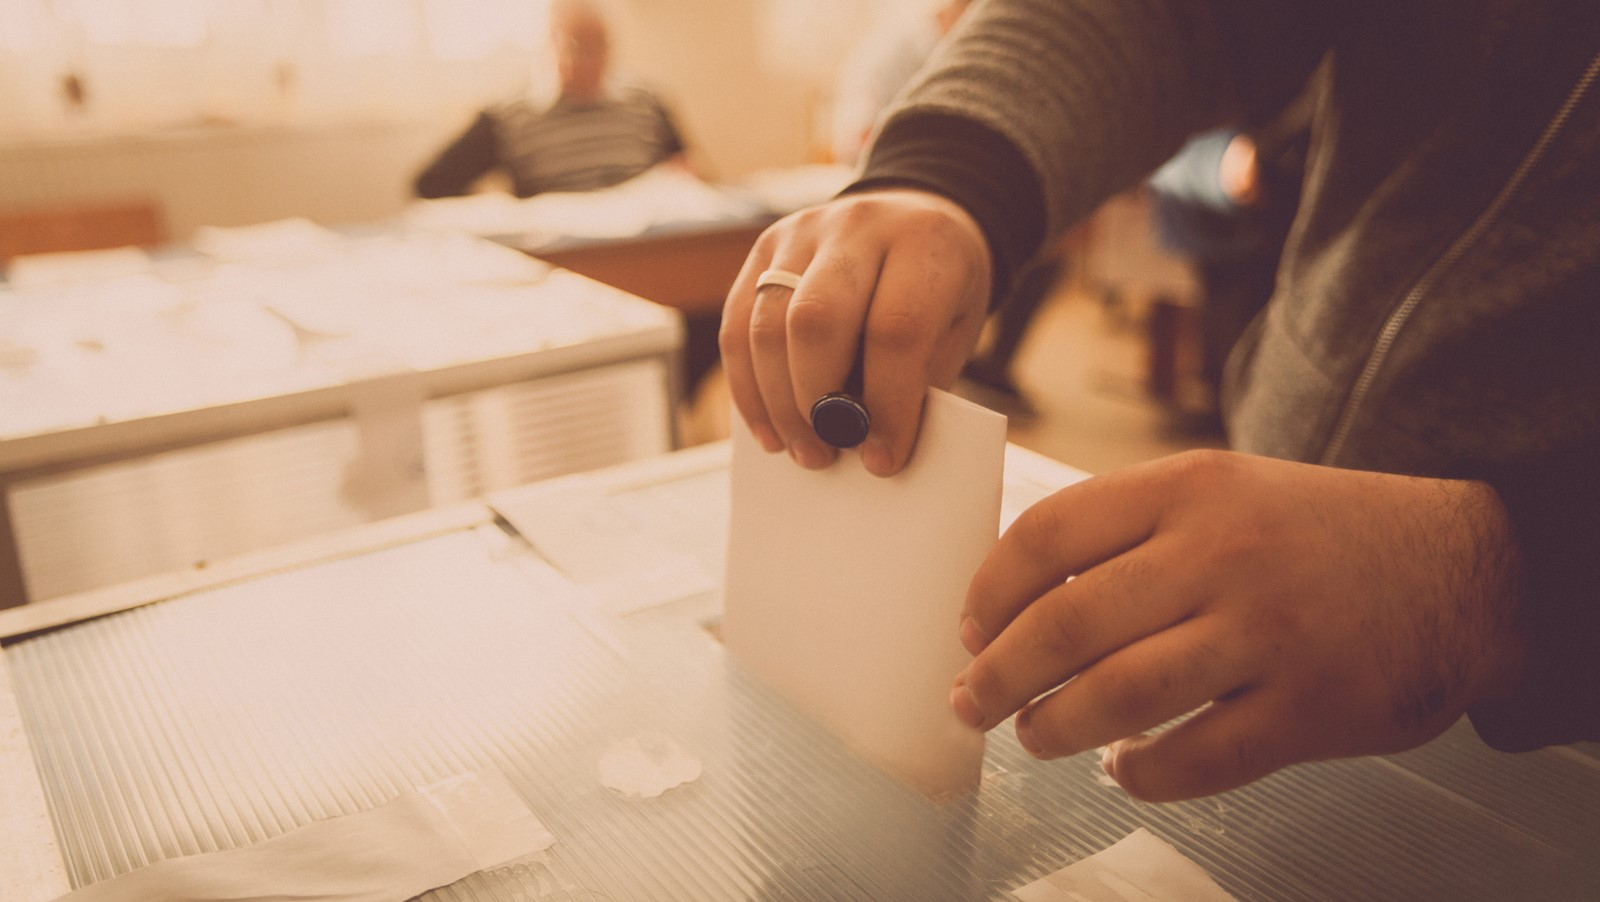 Man posting vote in ballot box